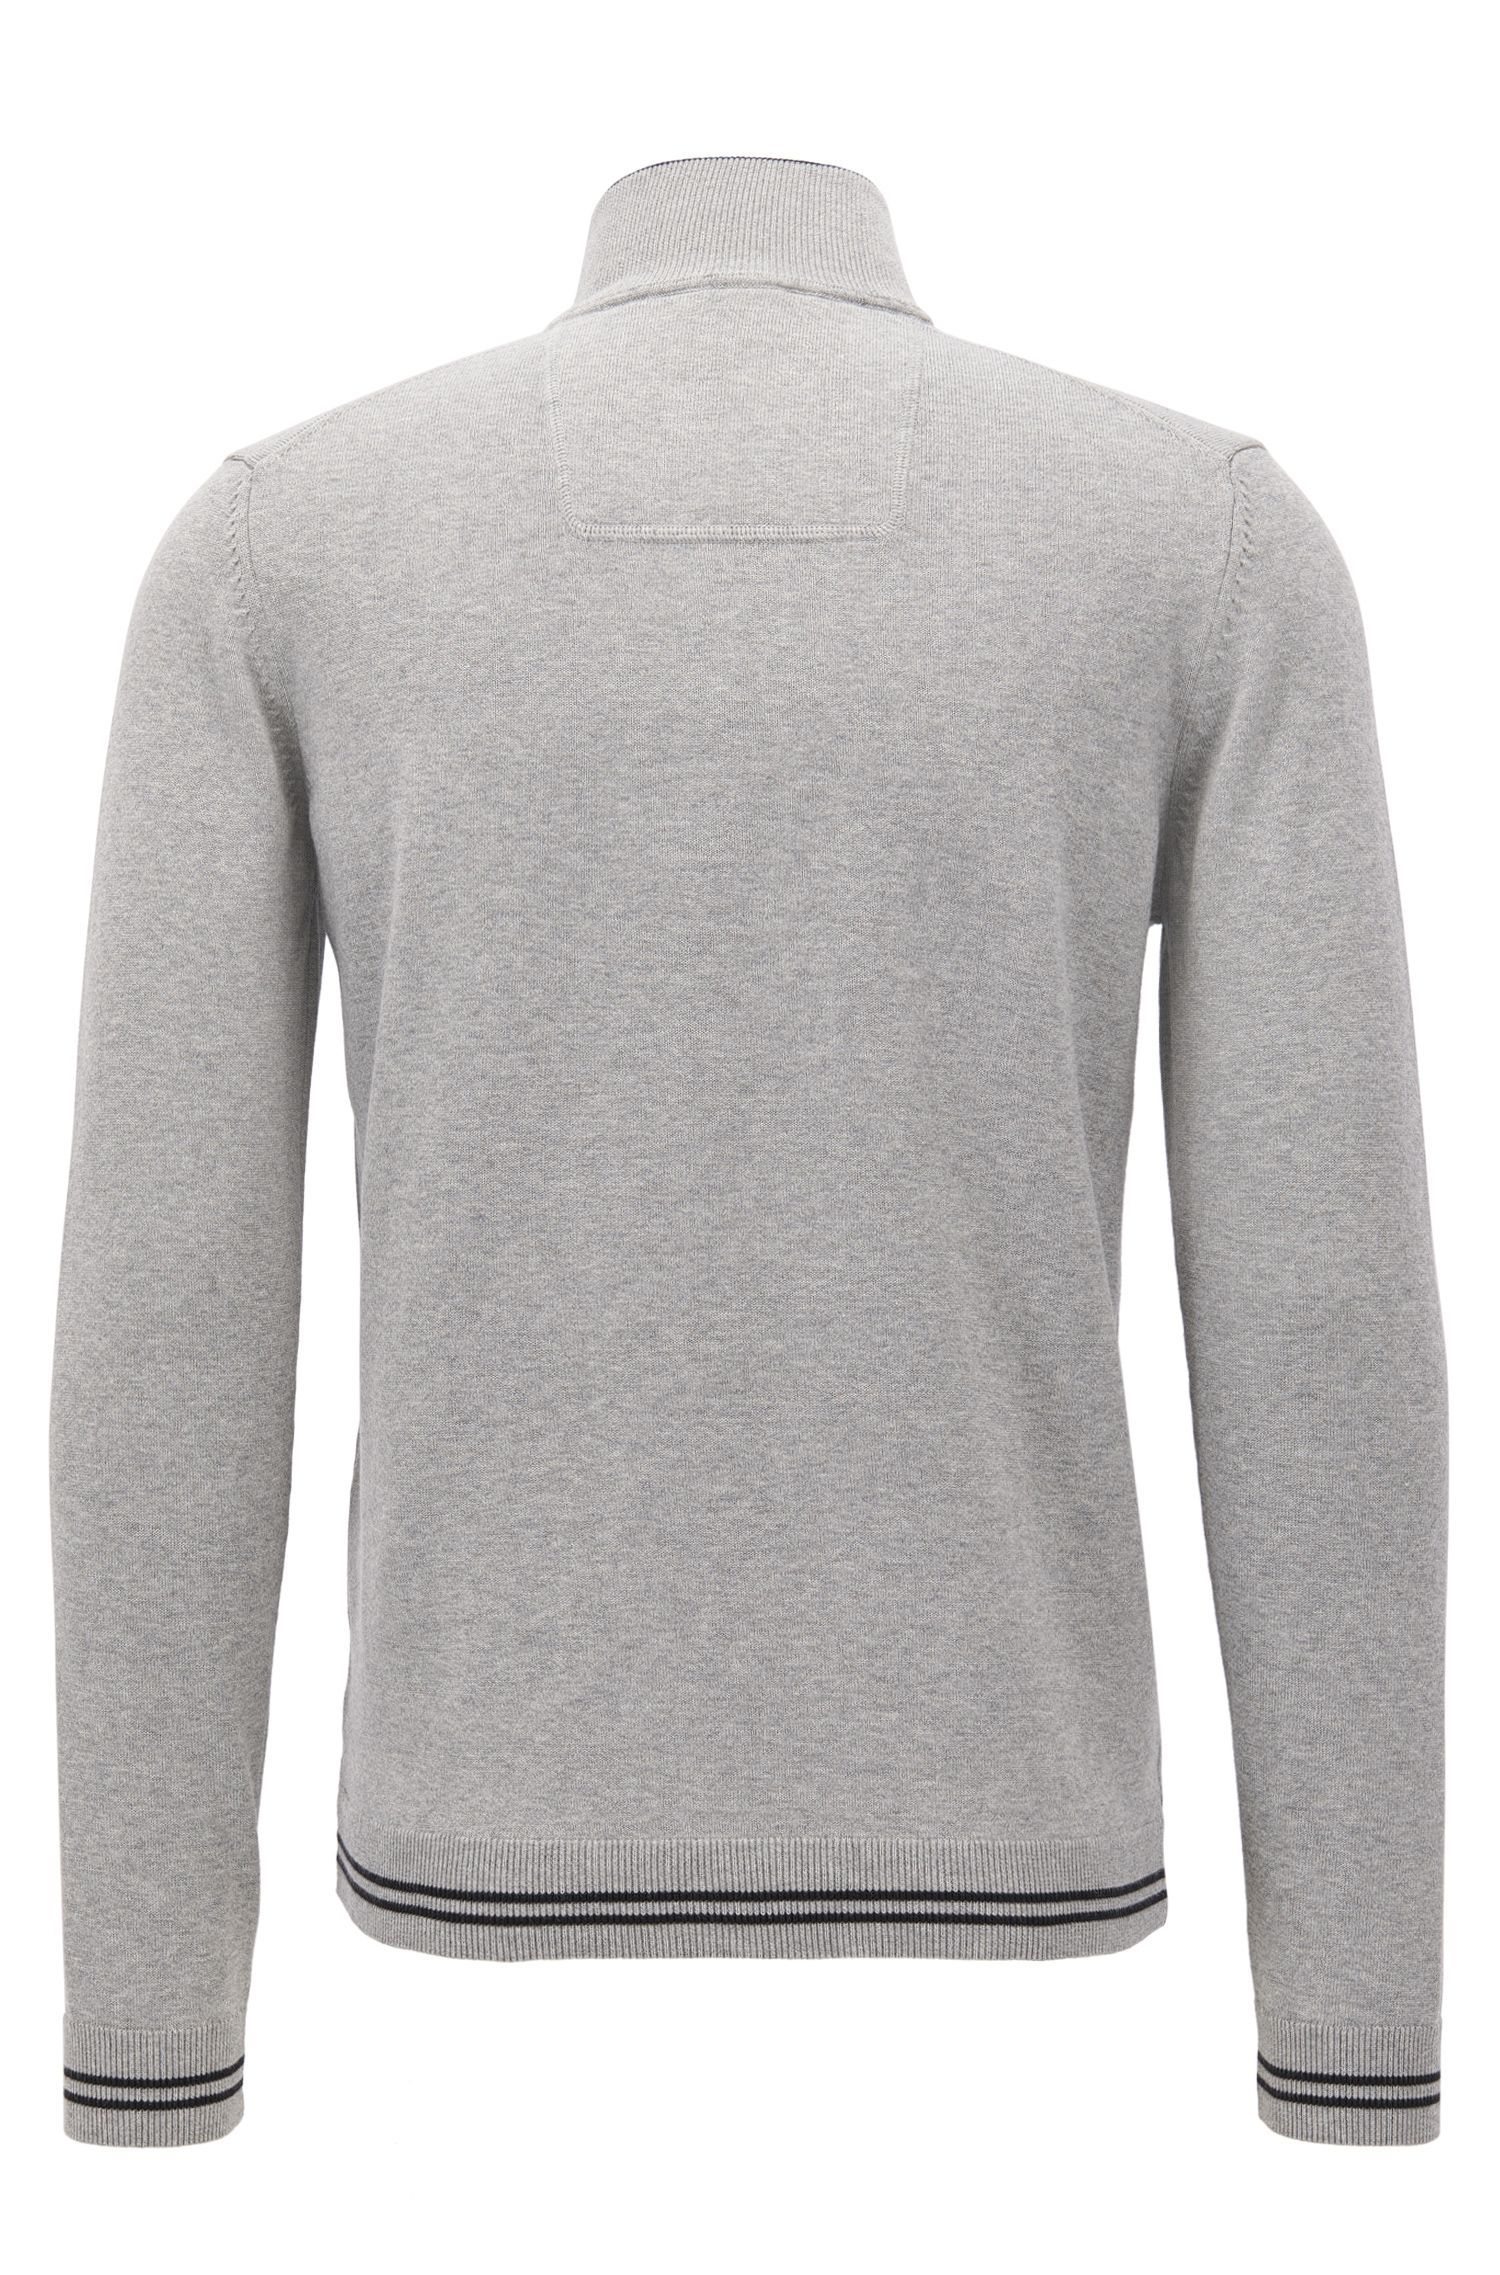 Cotton-blend sweater with a zip neck